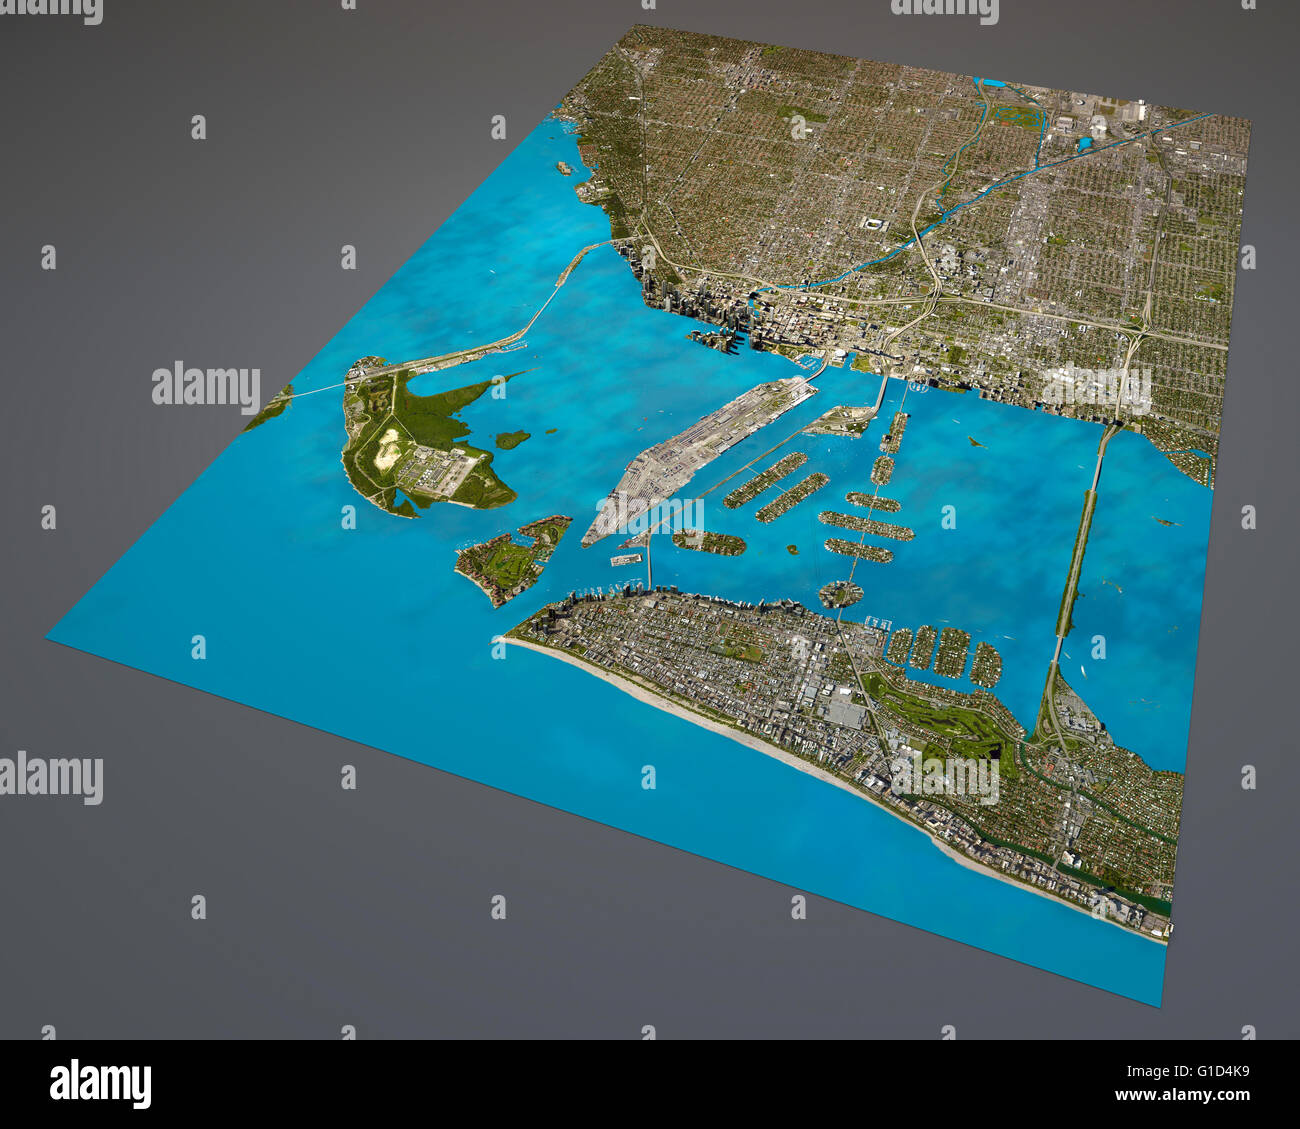 Miami Map Satellite View Aerial View Florida United States Of